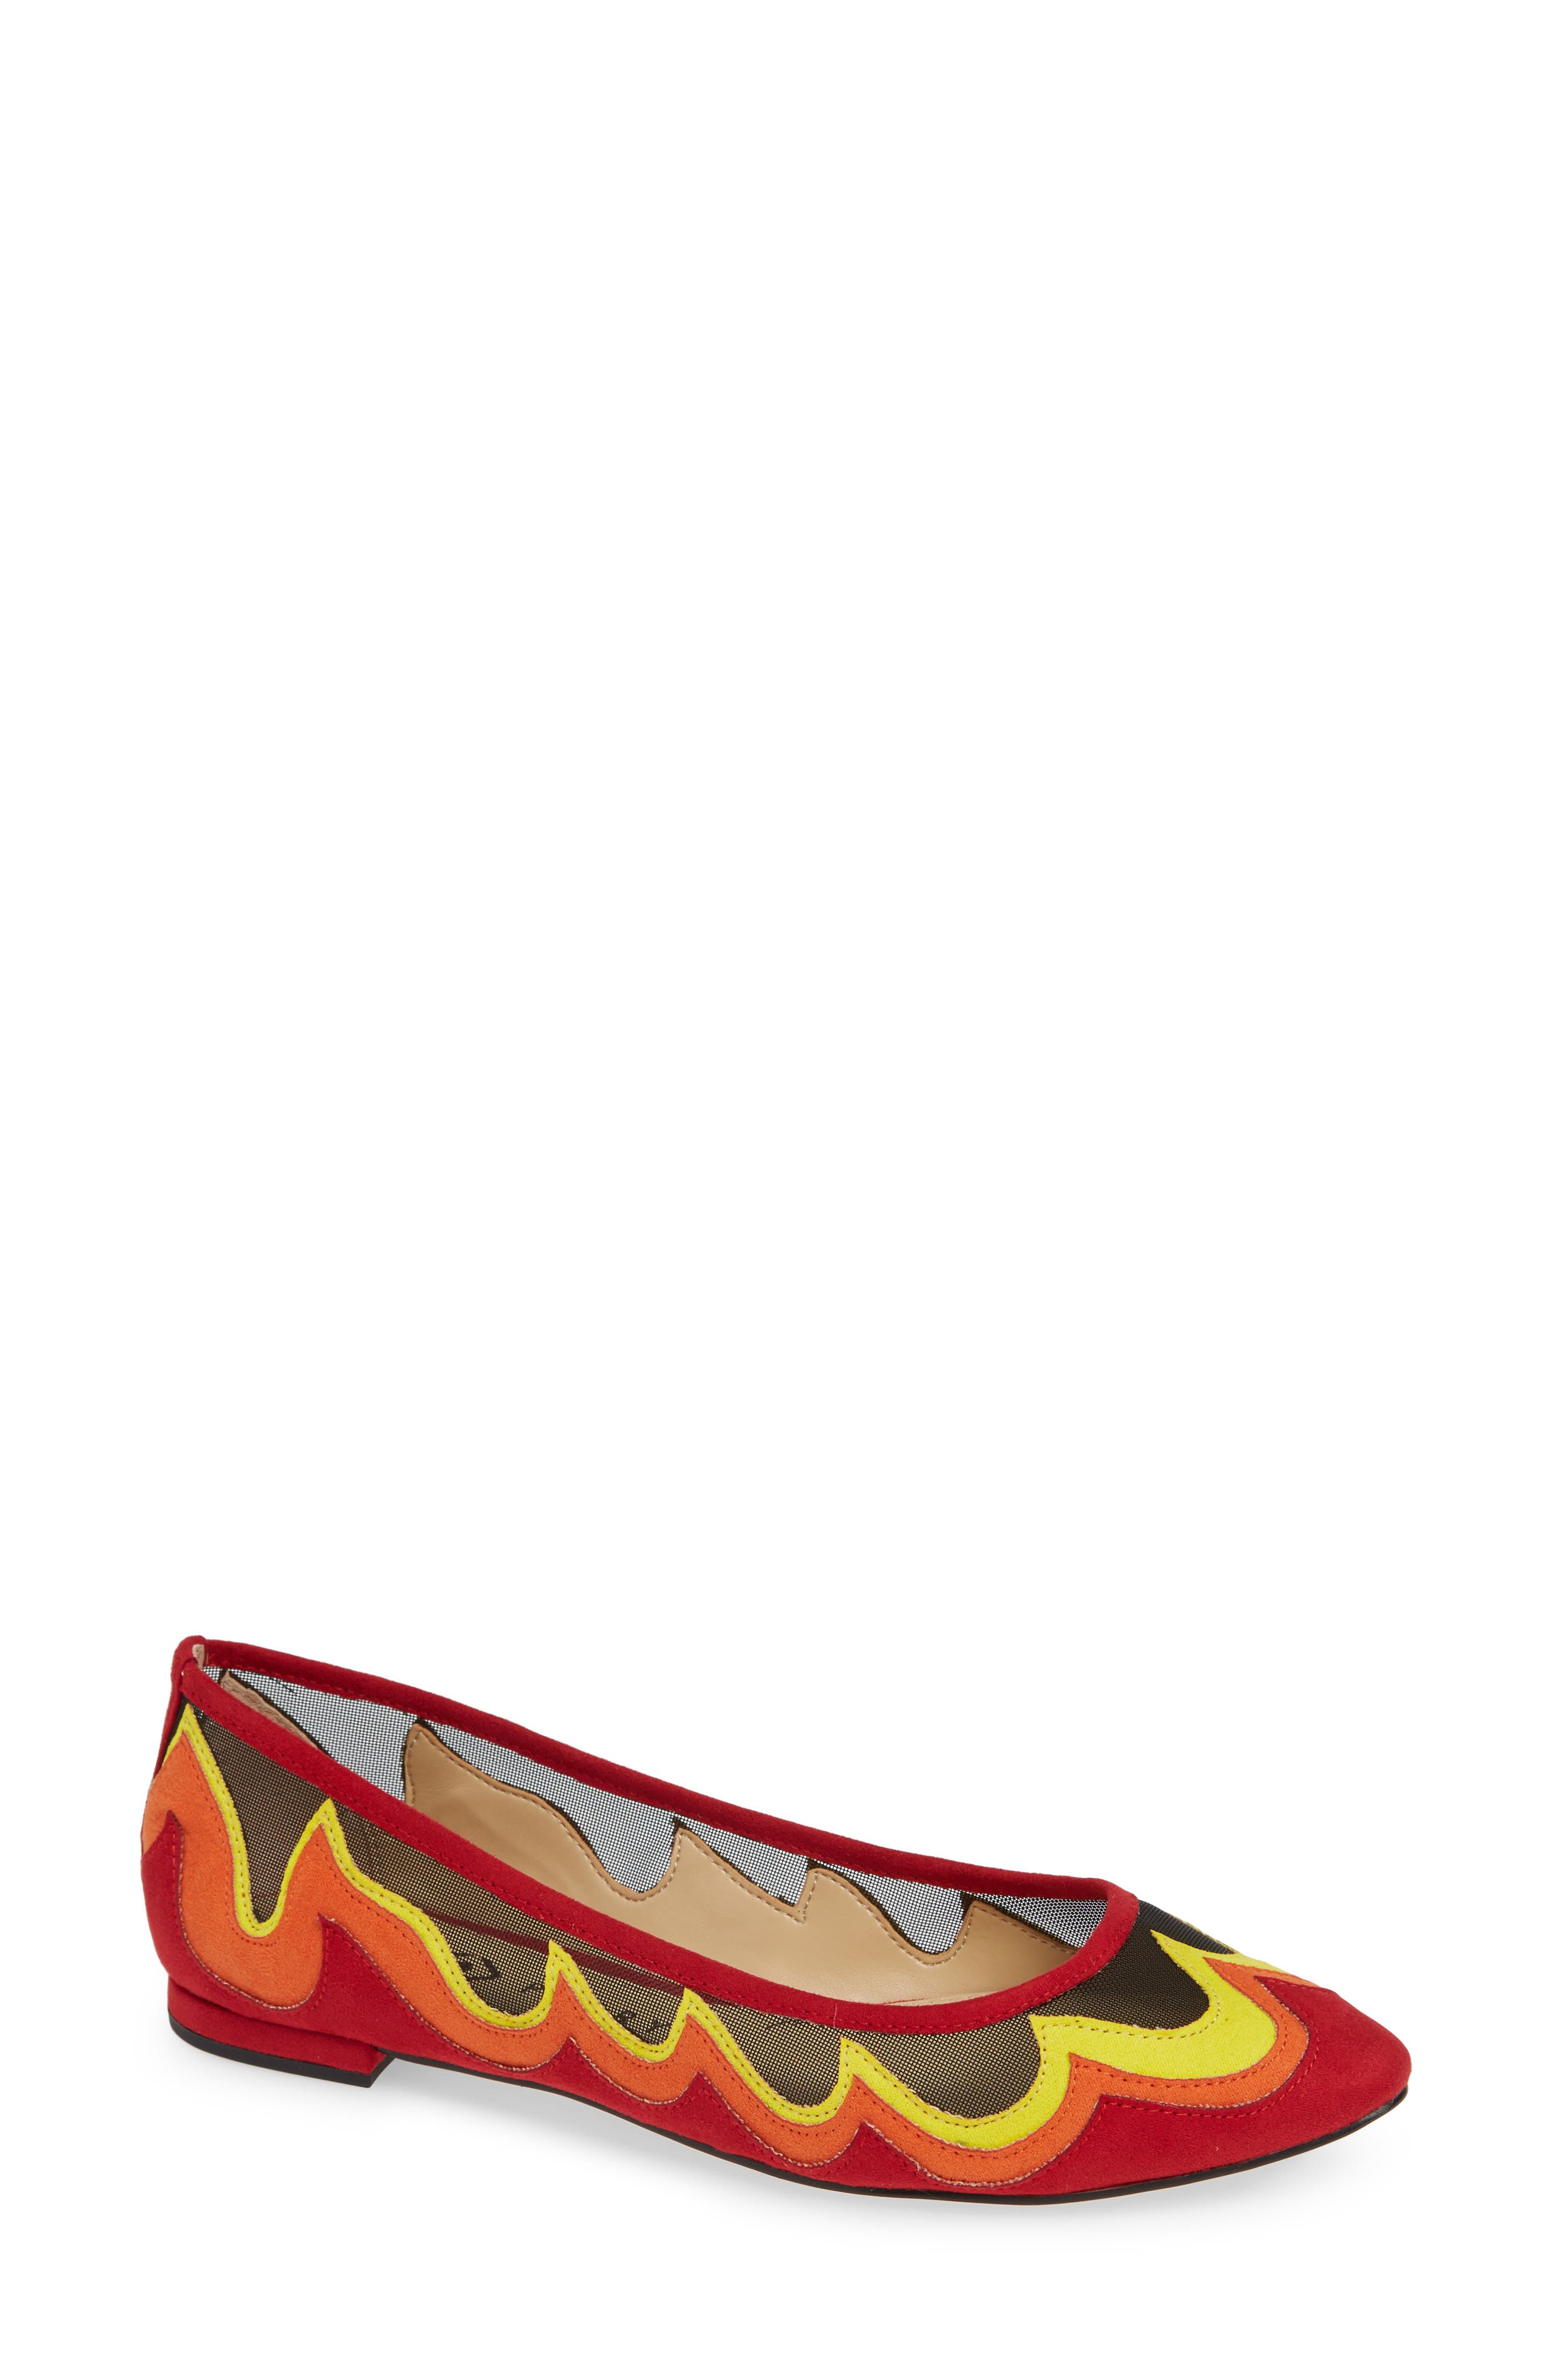 KATY PERRY Ballet Flat in Black/ Red